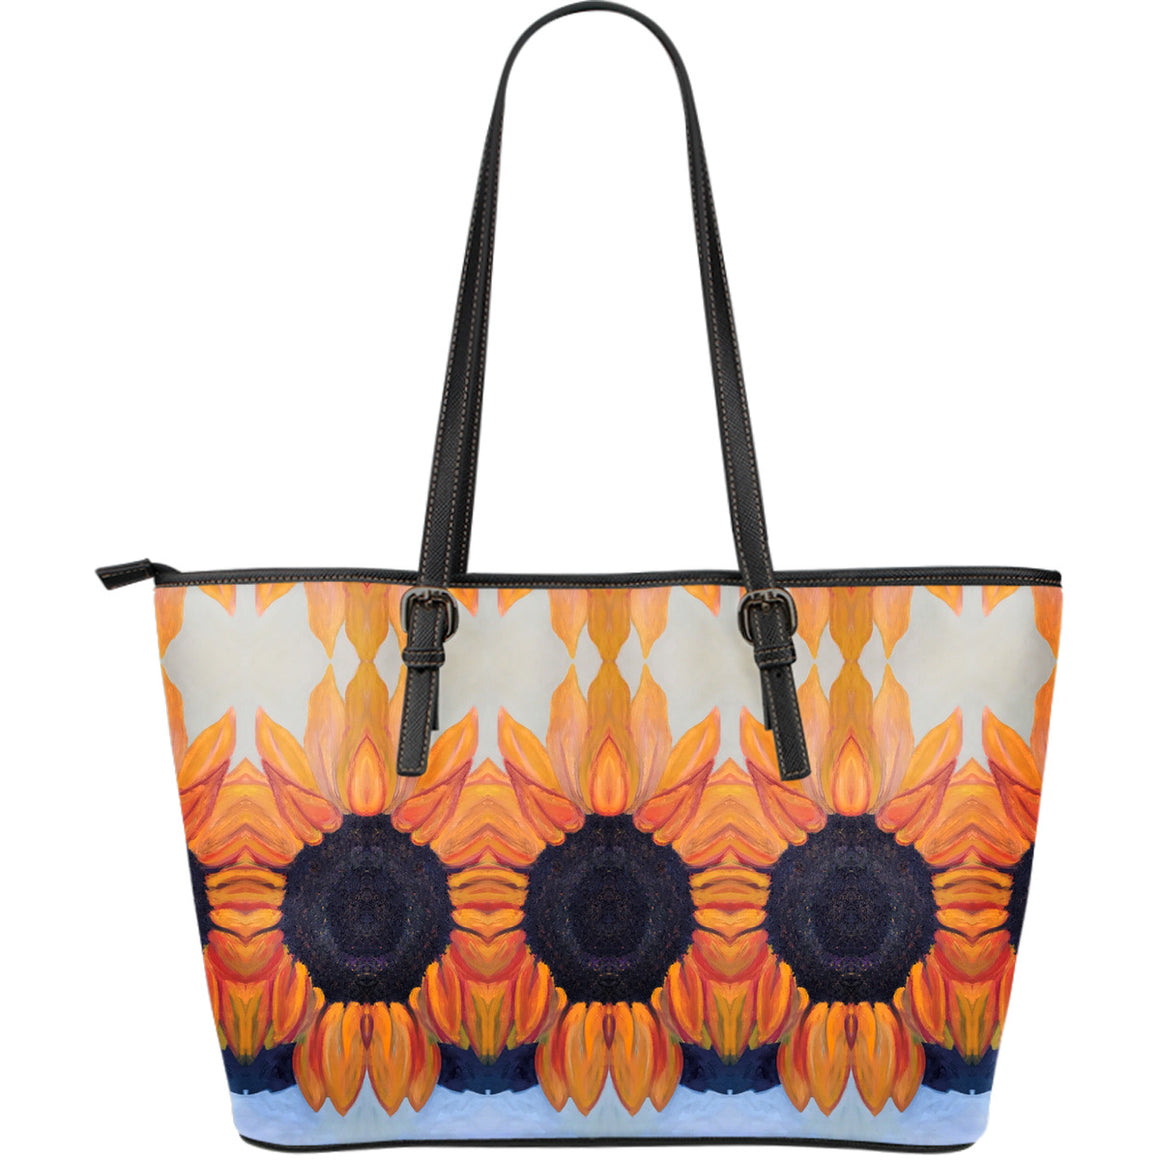 Sunflower Large Leather Tote Bag